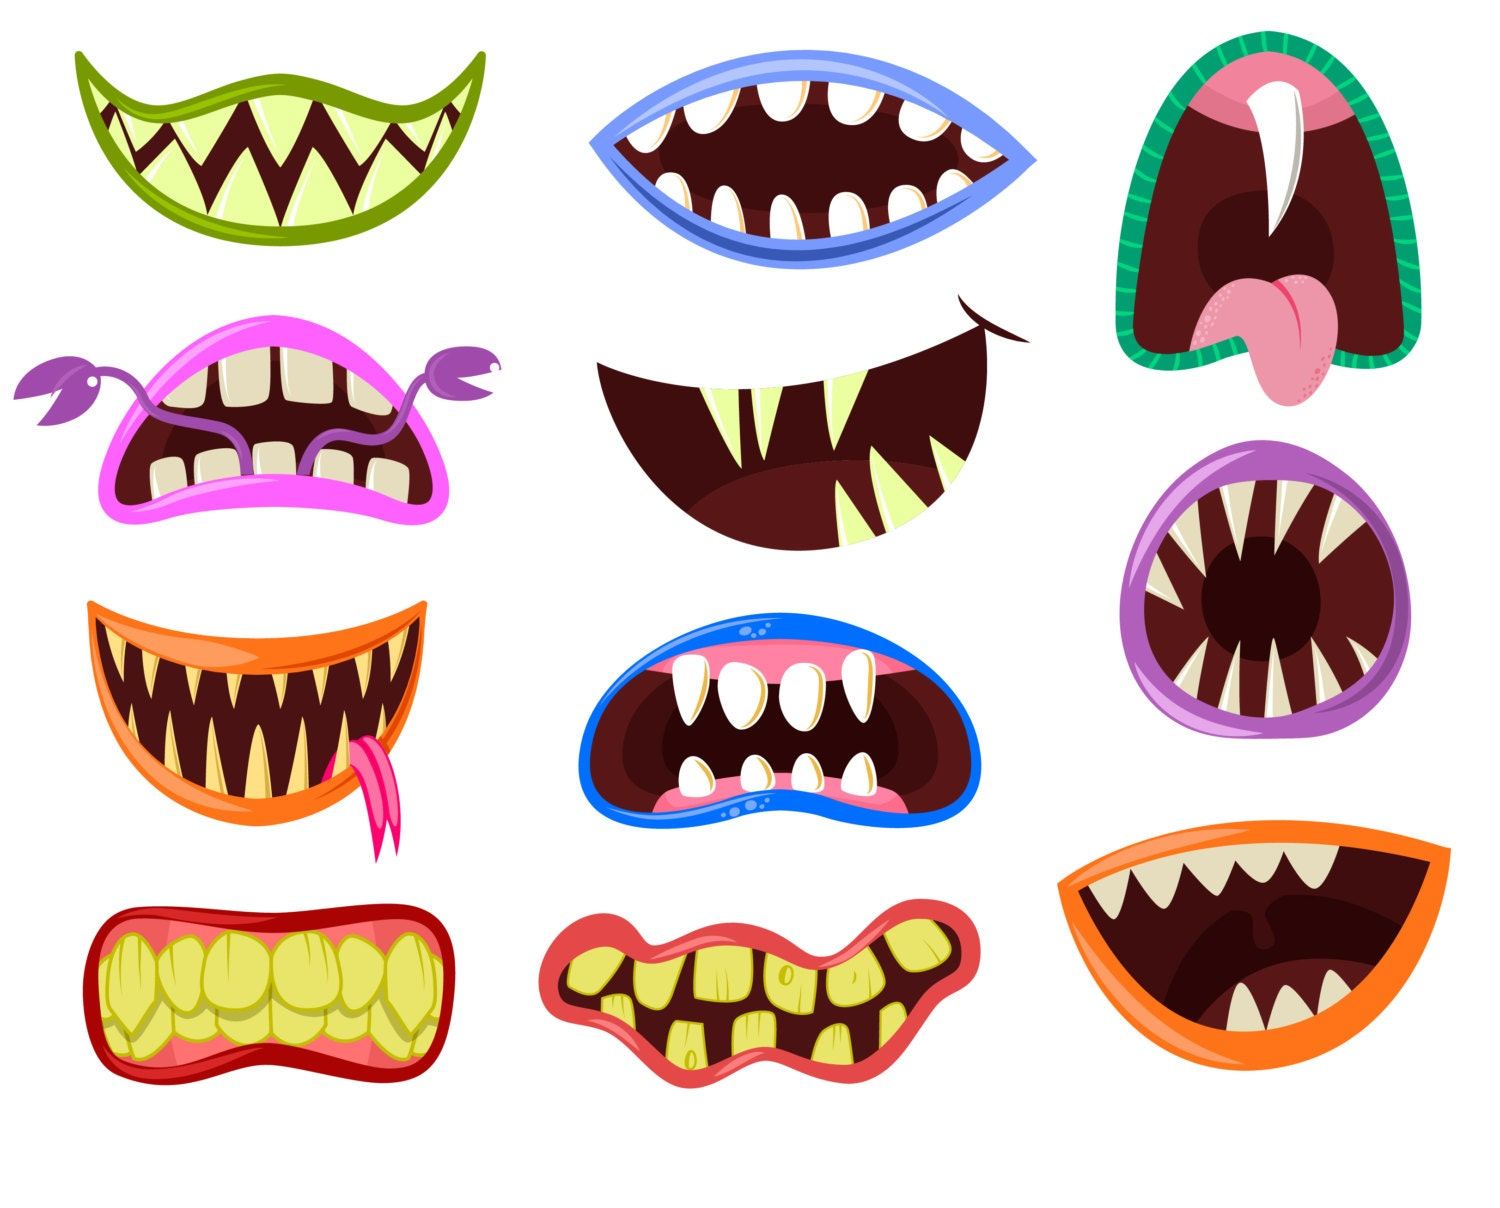 Cute monster clipart | Etsy